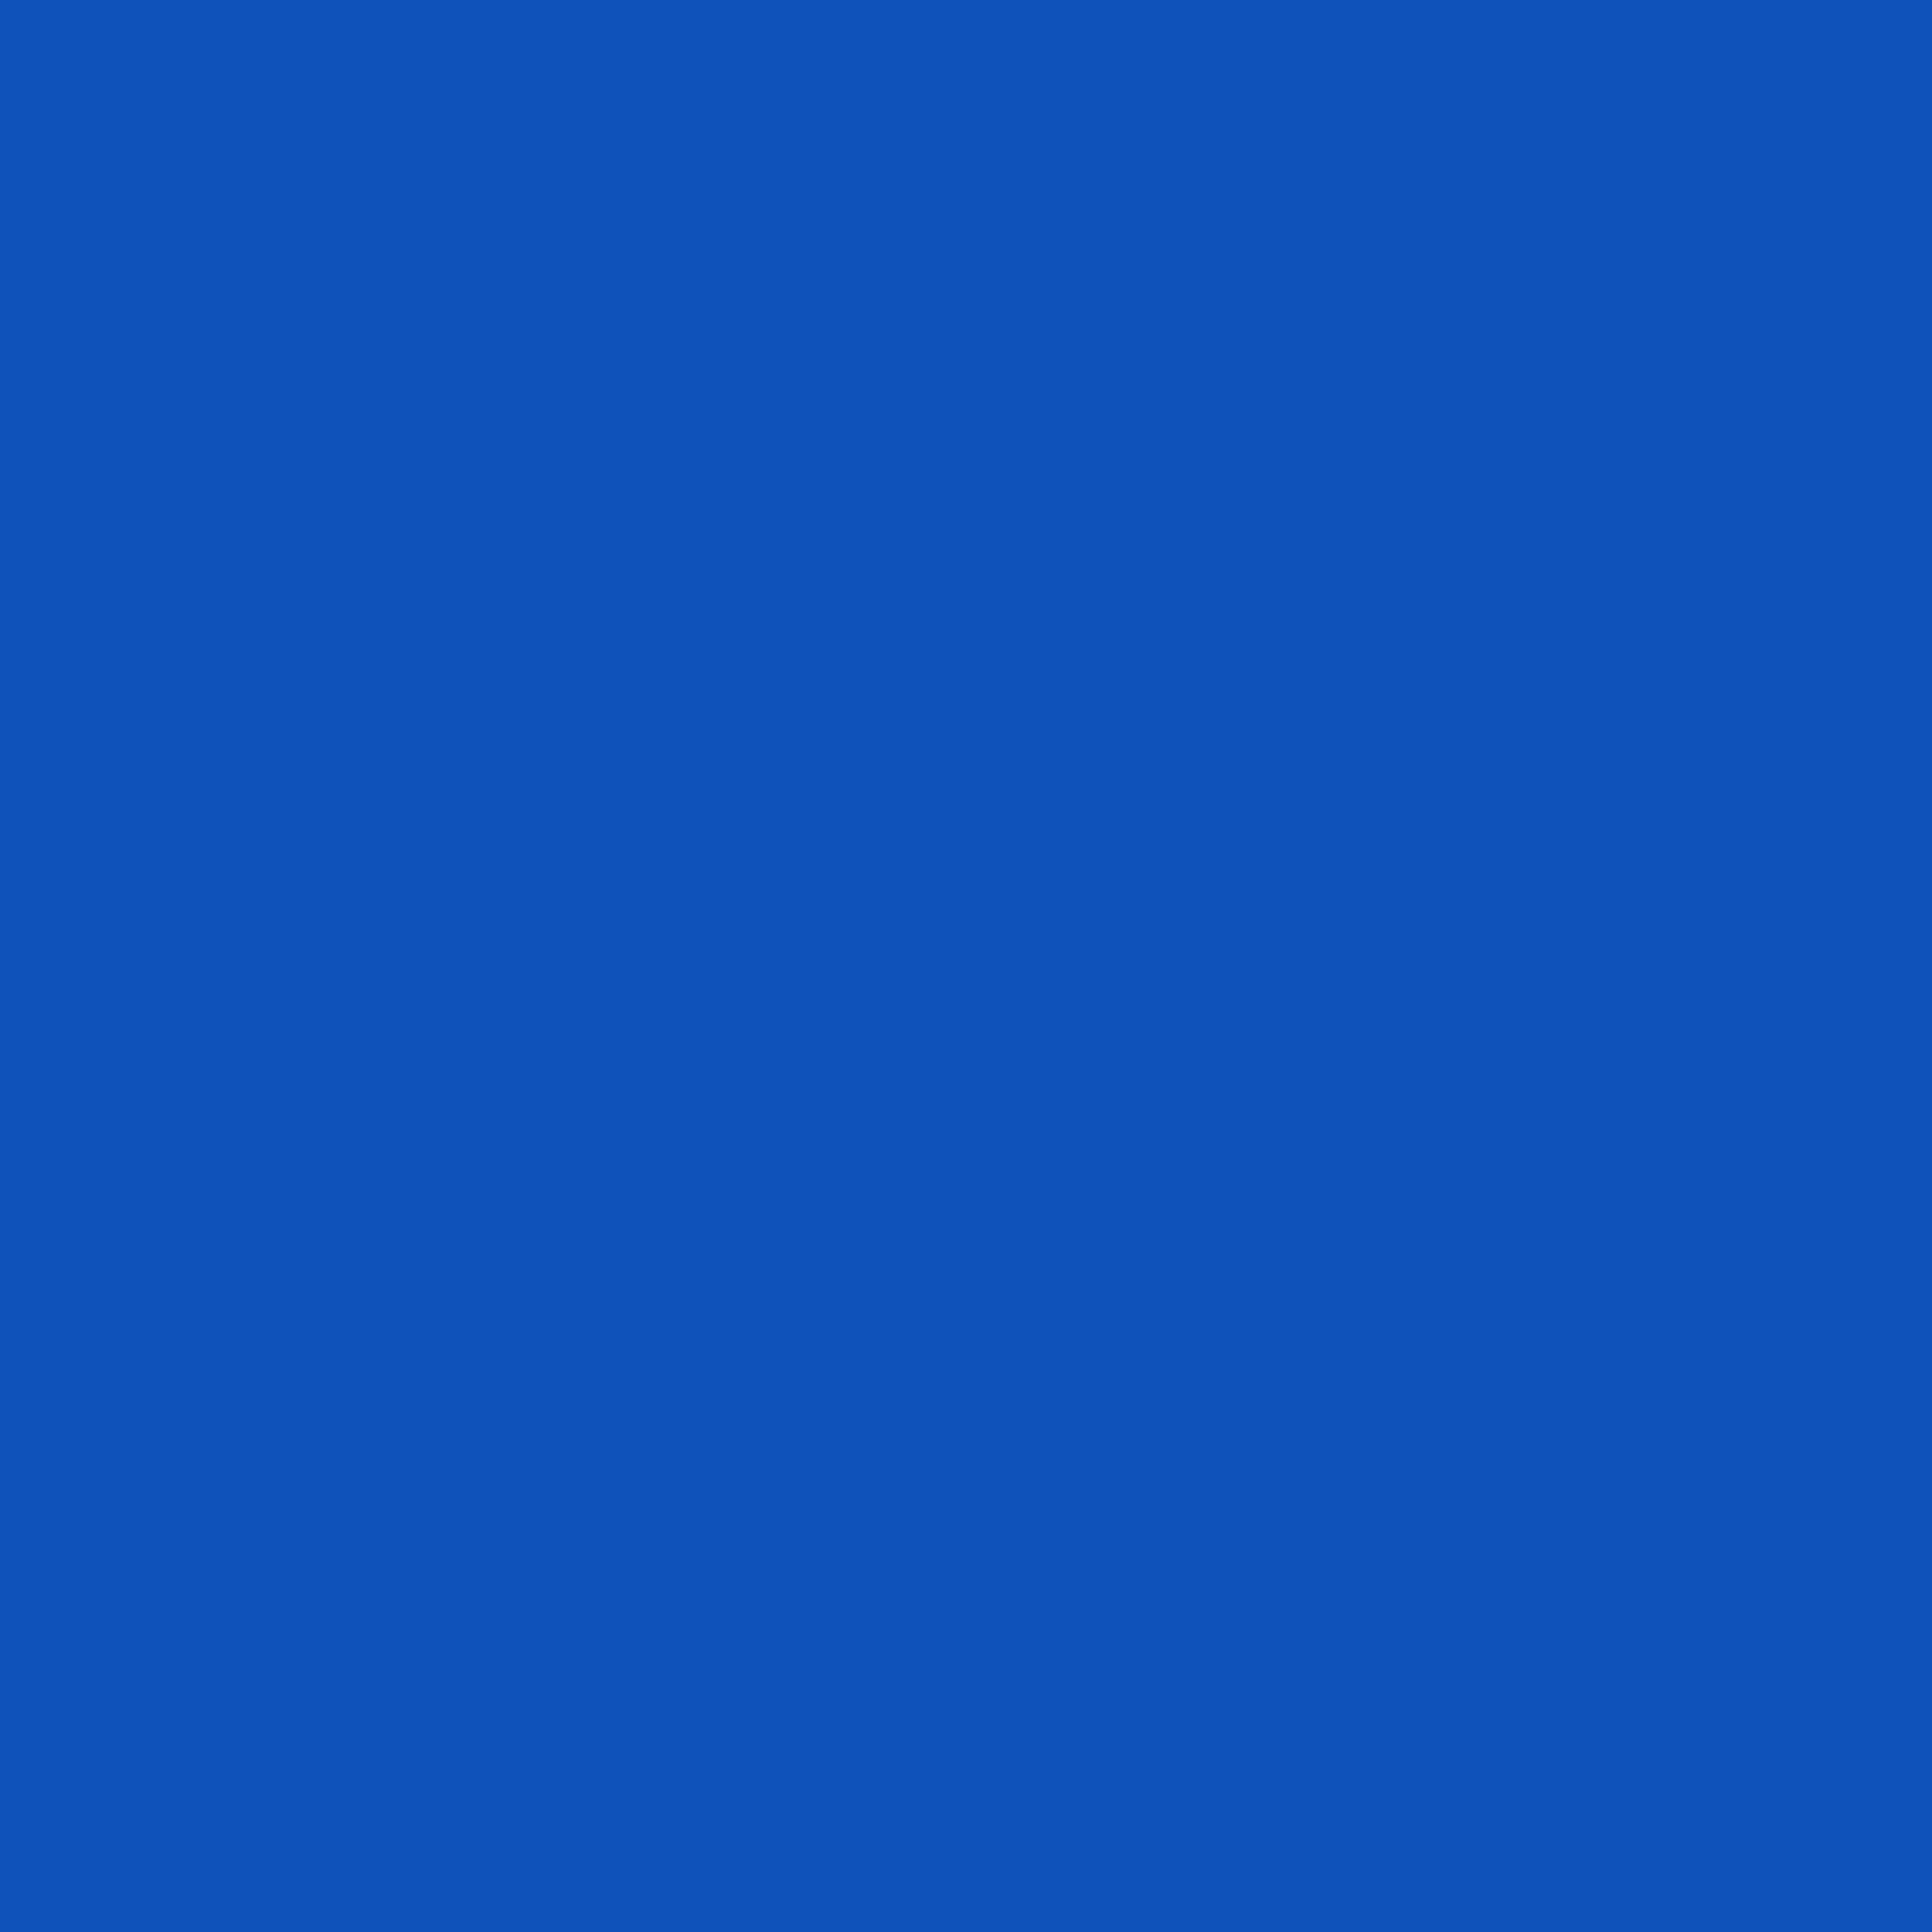 3600x3600 Sapphire Solid Color Background